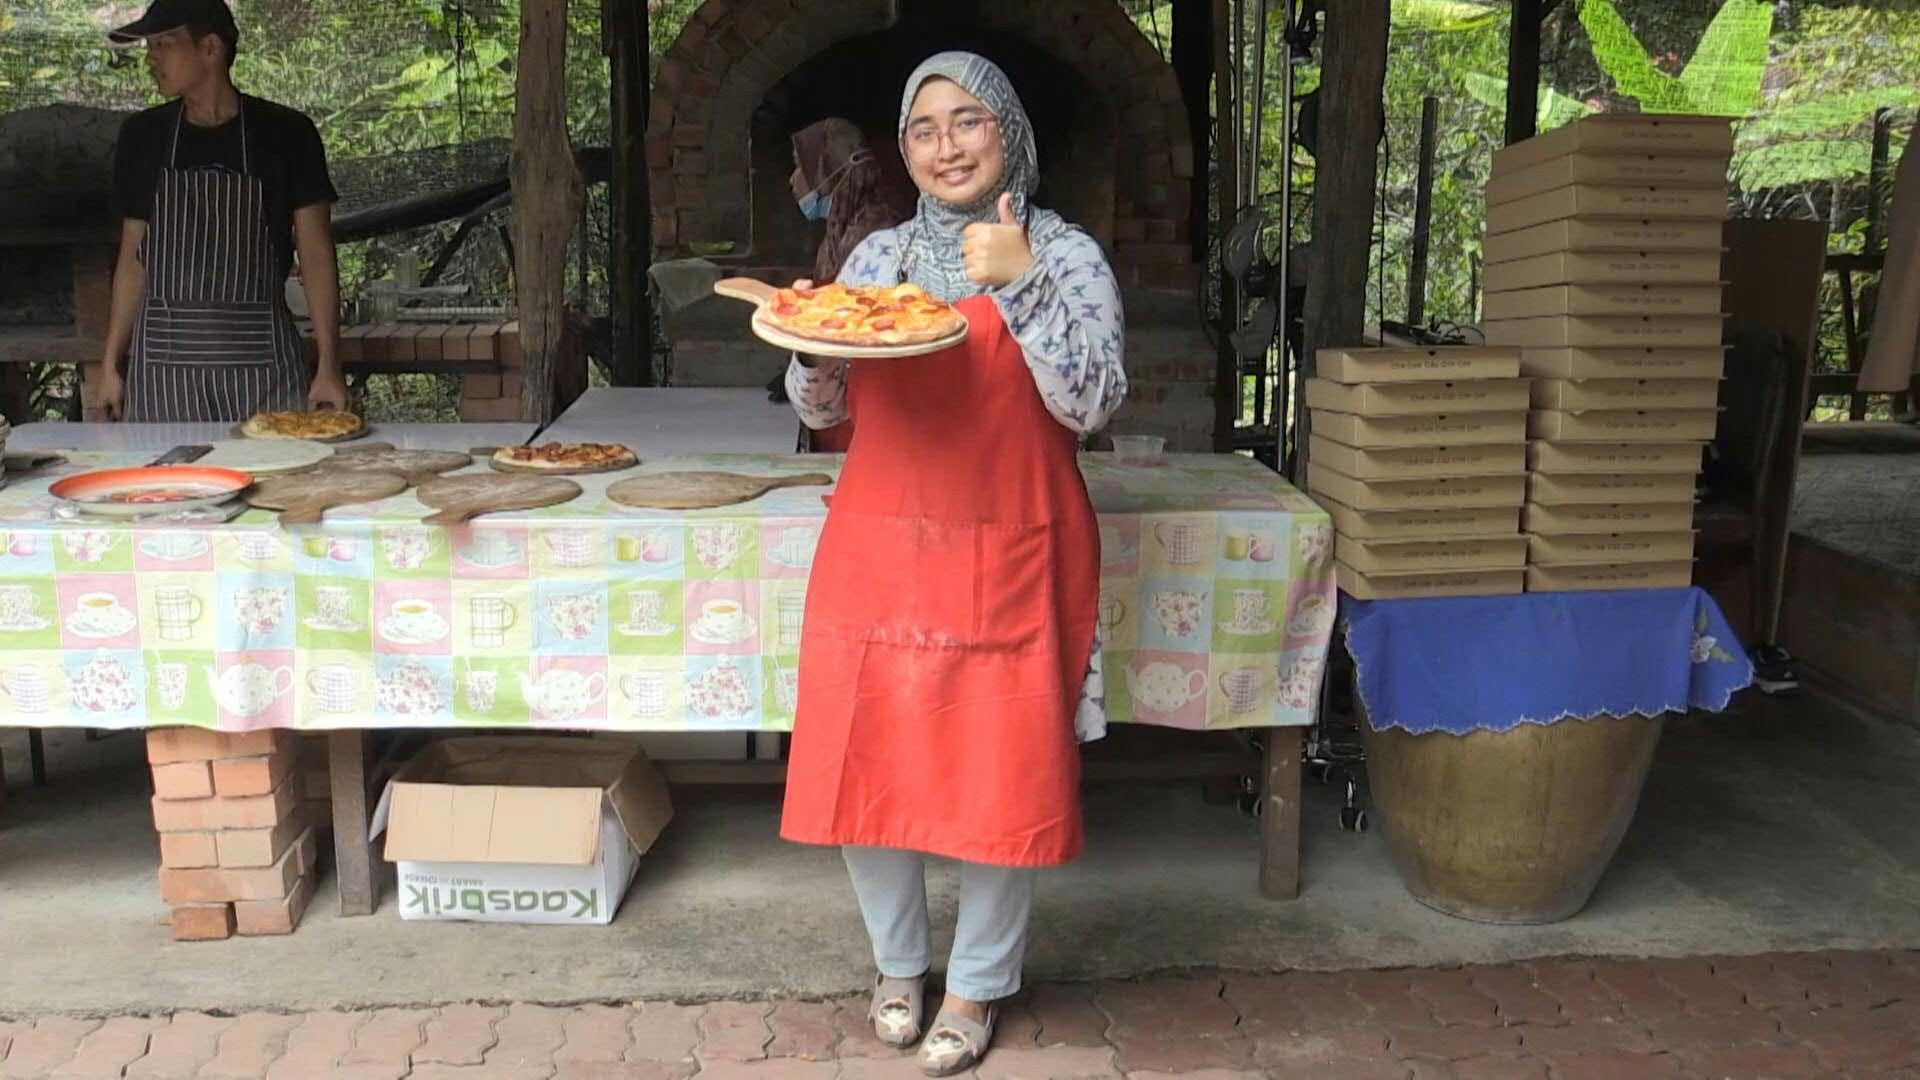 uk.news.yahoo.com: Pandemic pizza: Malaysian family cooks up solution to virus woes